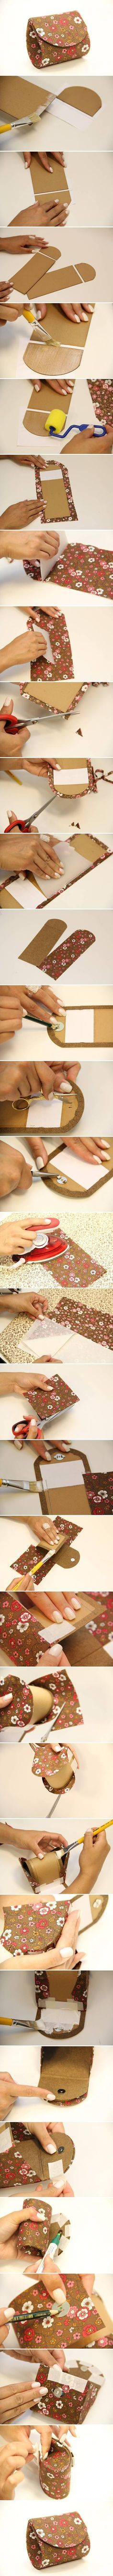 DIY Money Pouch crafts craft ideas easy crafts diy ideas diy crafts easy diy fun diy diy fashion craft fashion fashion diy craft purse craft hand bag diy bag by Ideias Diy, Easy Diy Crafts, Fun Diy, Teen Crafts, Handmade Bags, Diy Fashion, Sewing Projects, Diy Projects, Sewing Tutorials